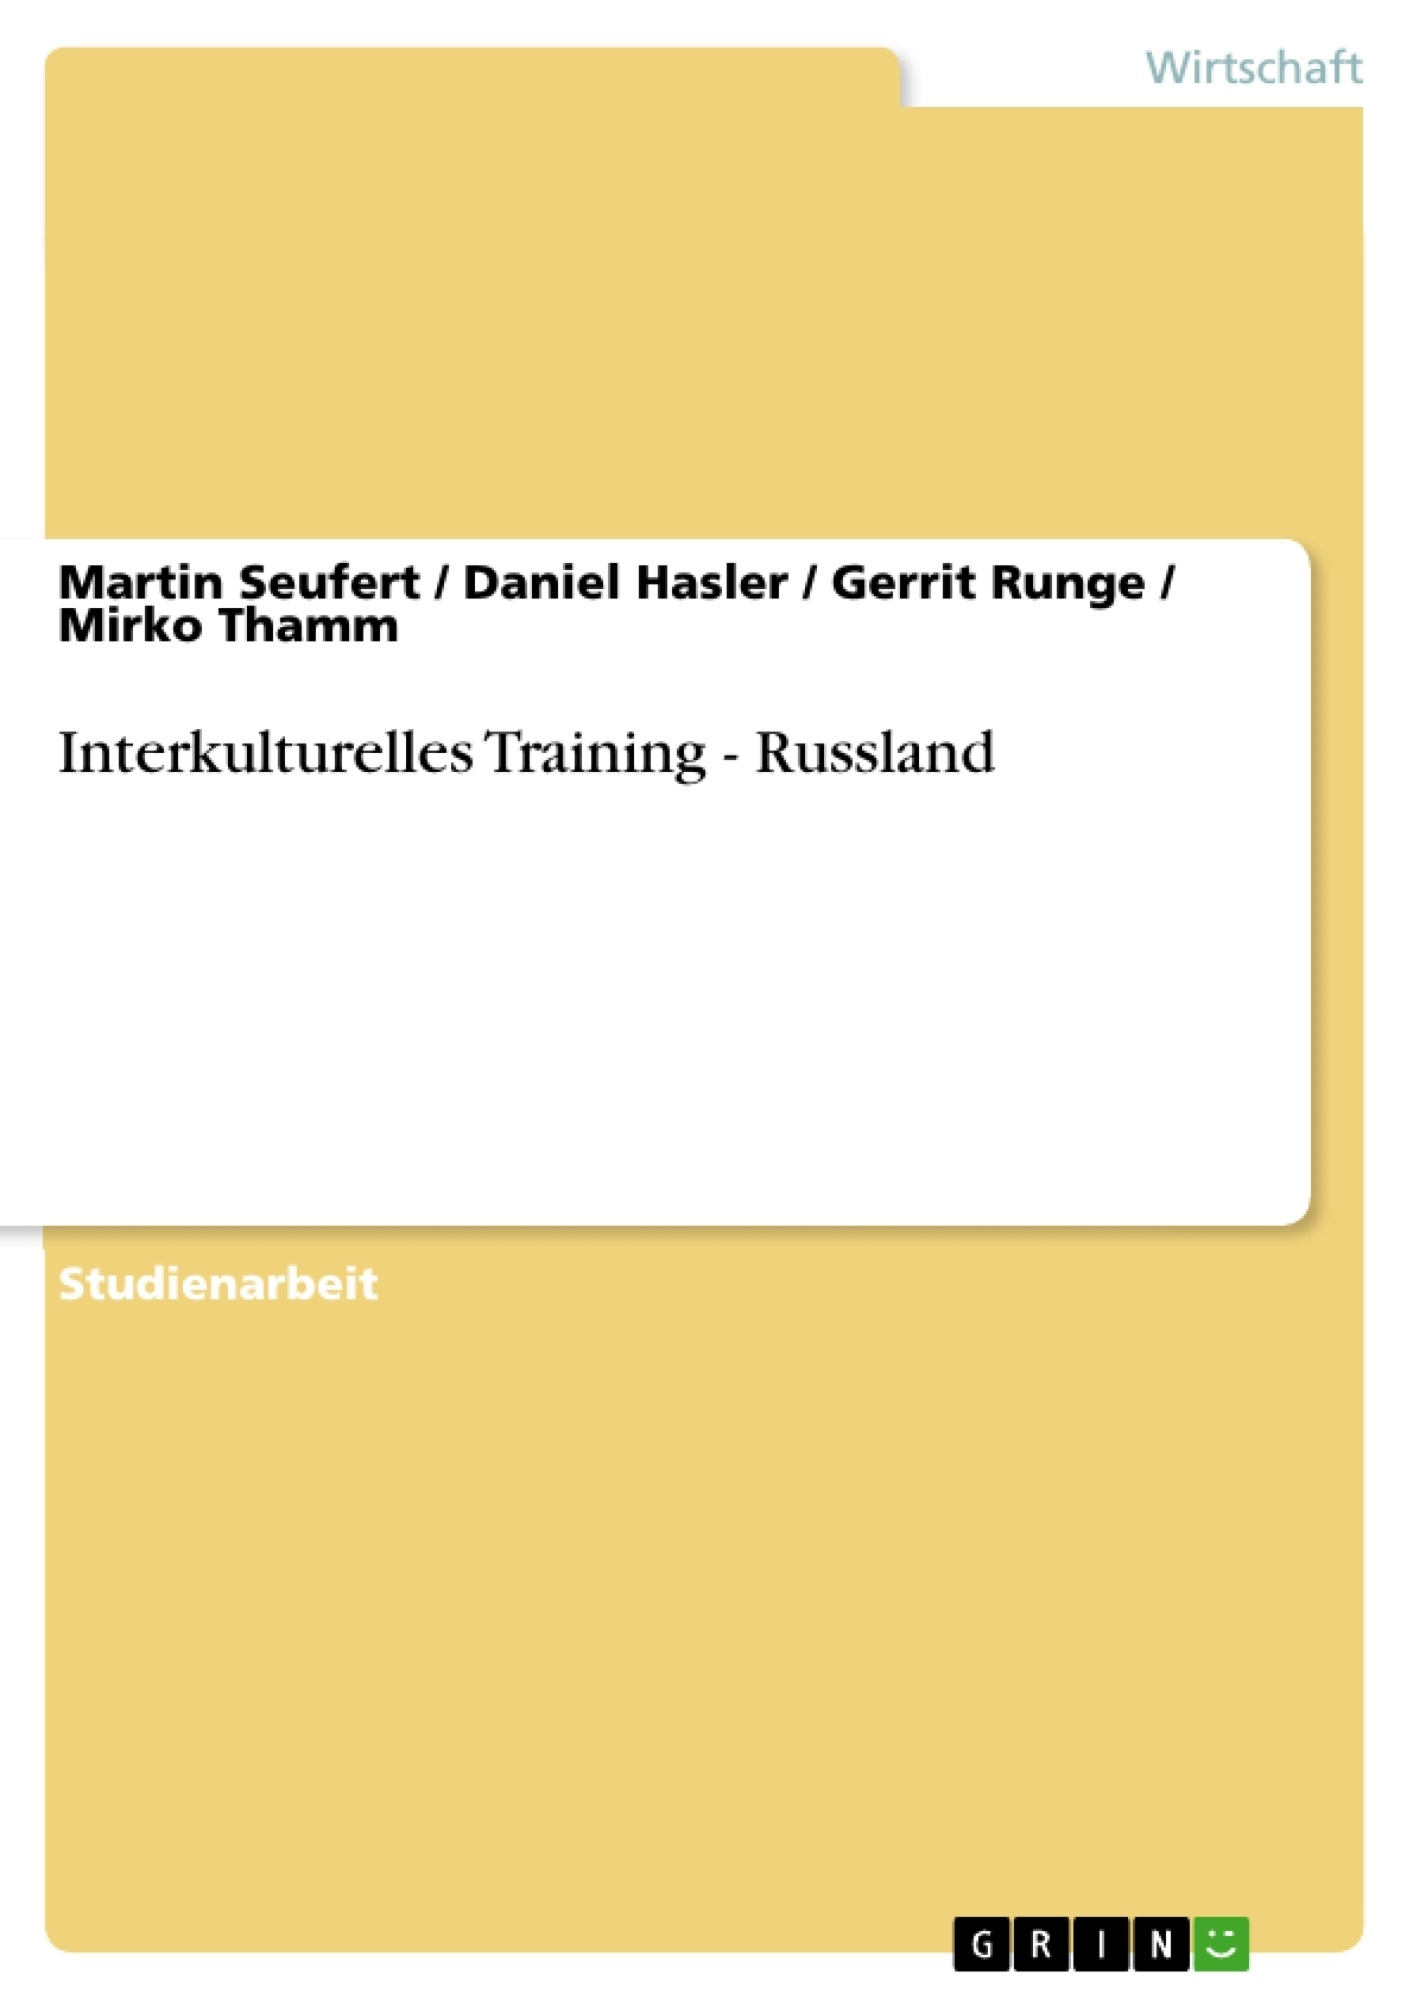 Titel: Interkulturelles Training - Russland